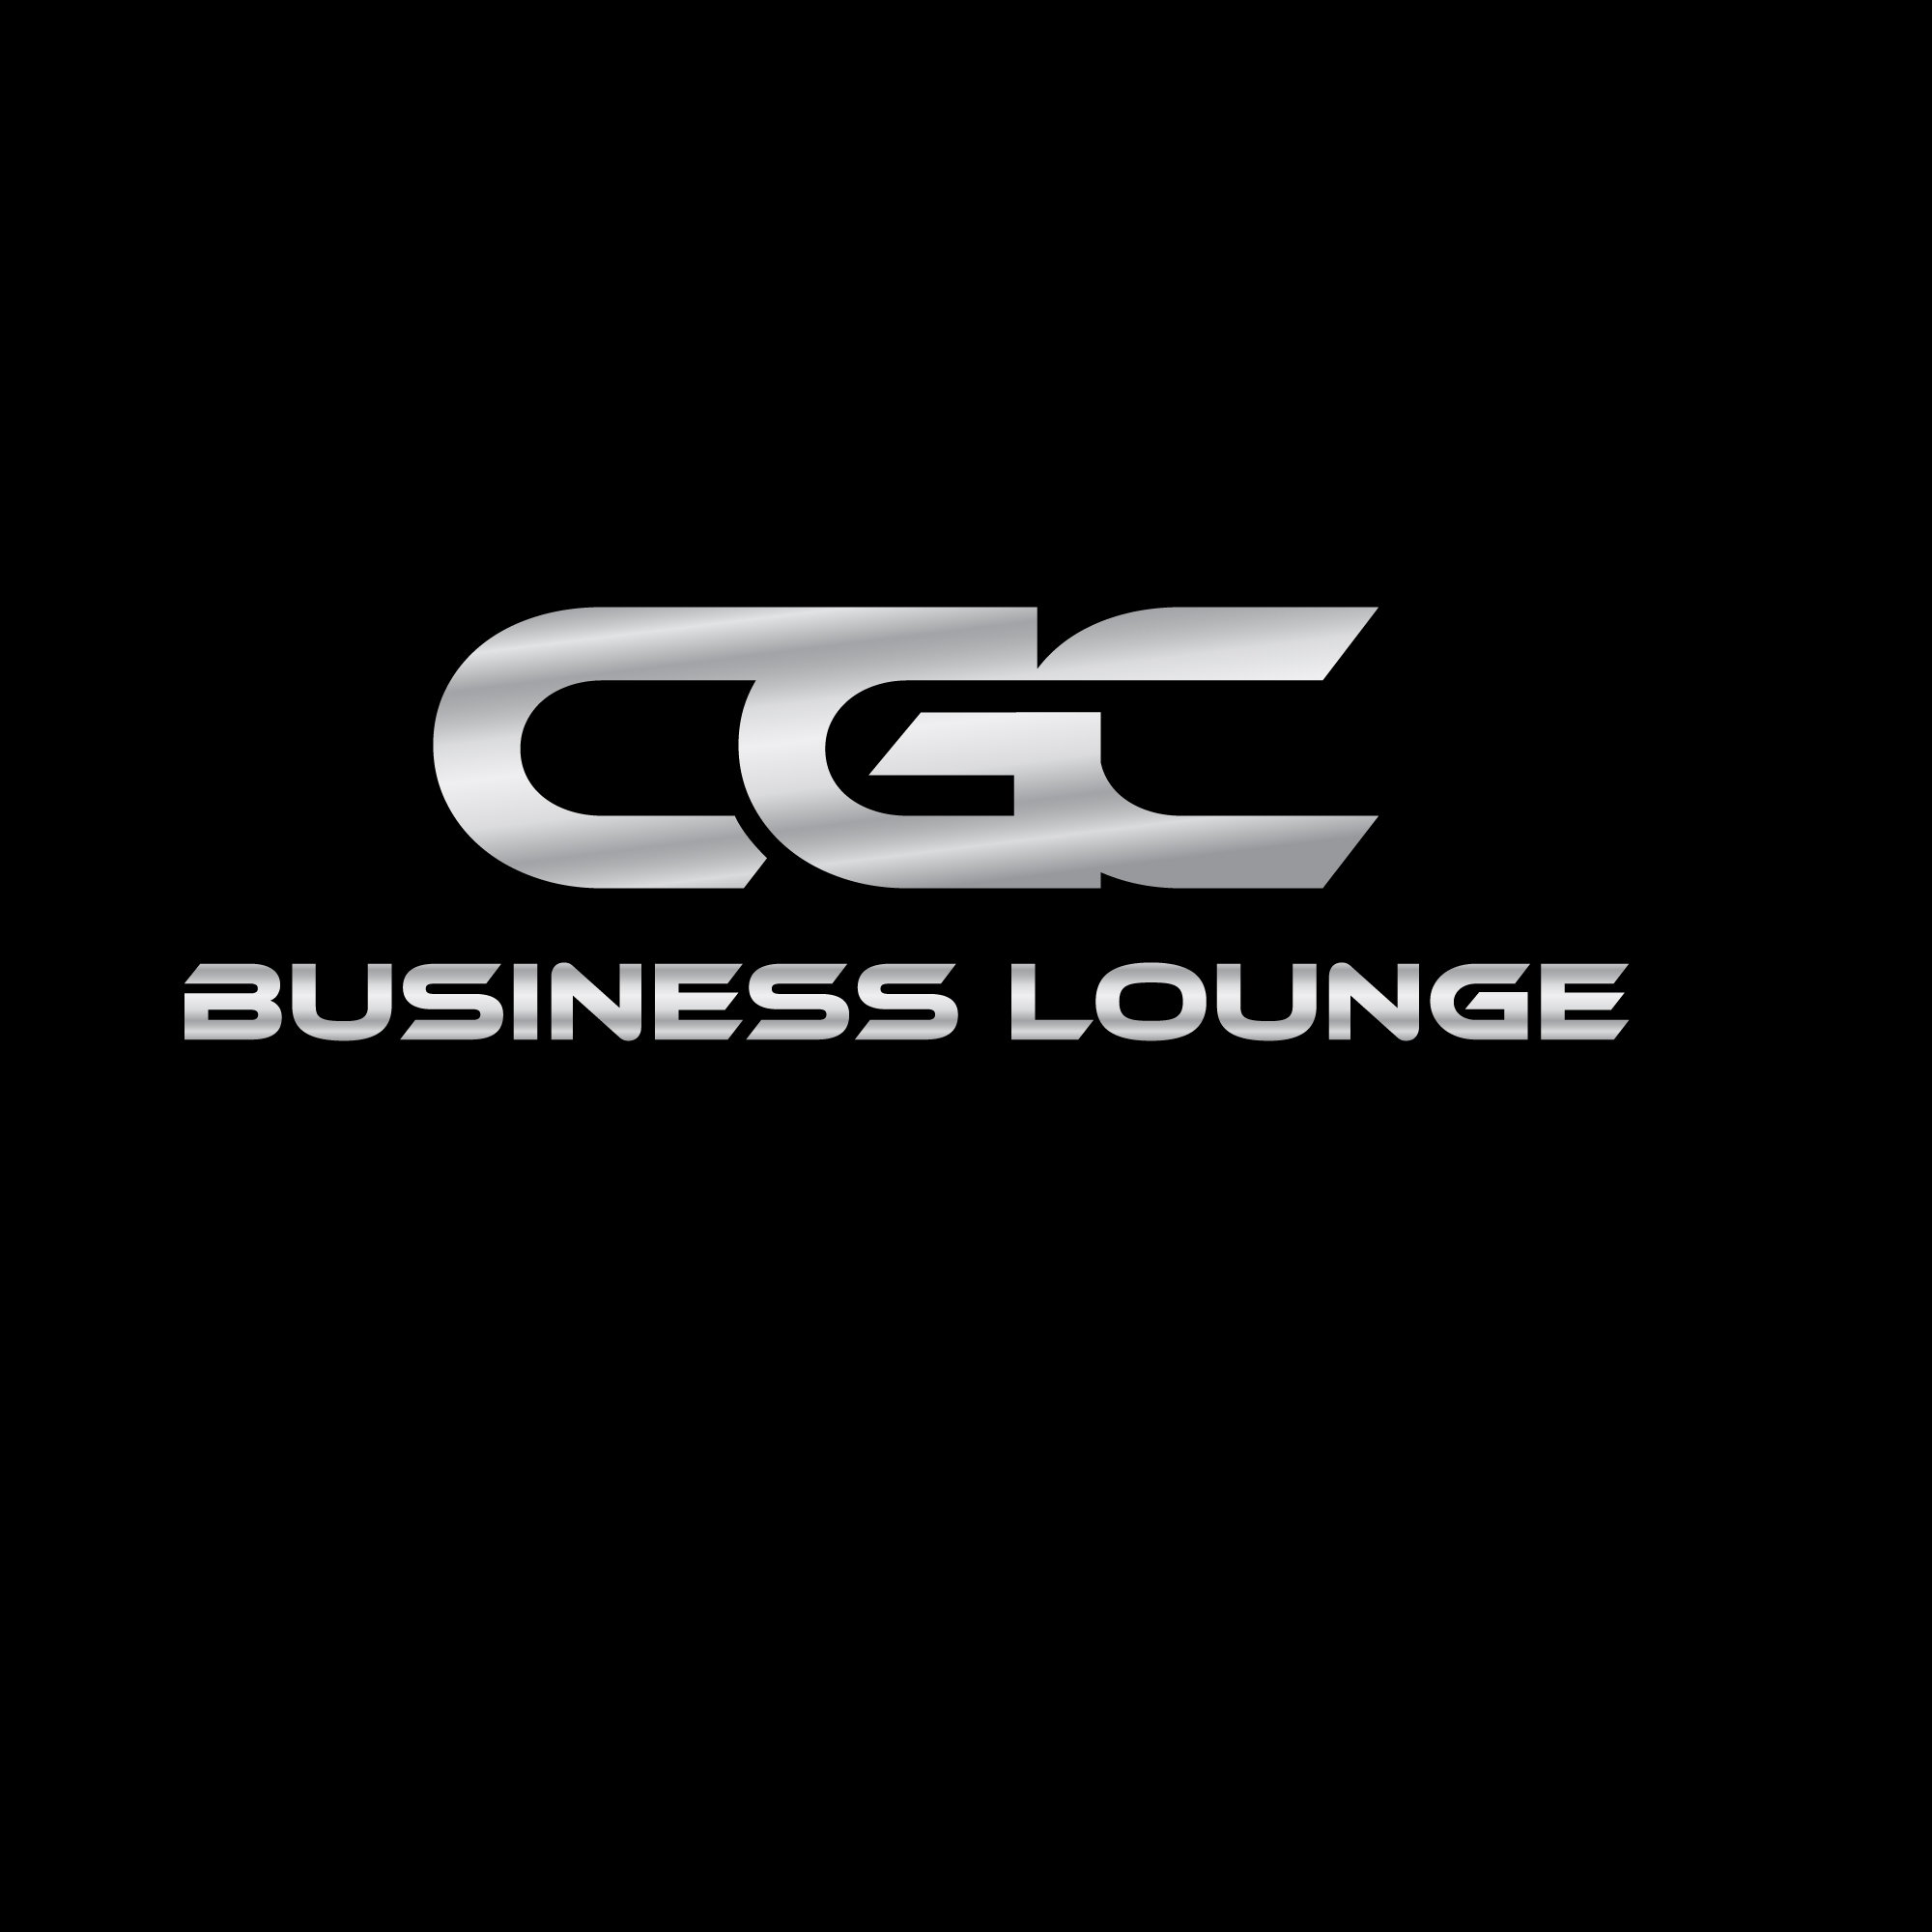 CGC Business Lounge Organizes Event to Teach the Dynamics of Having a Six-Figure Business